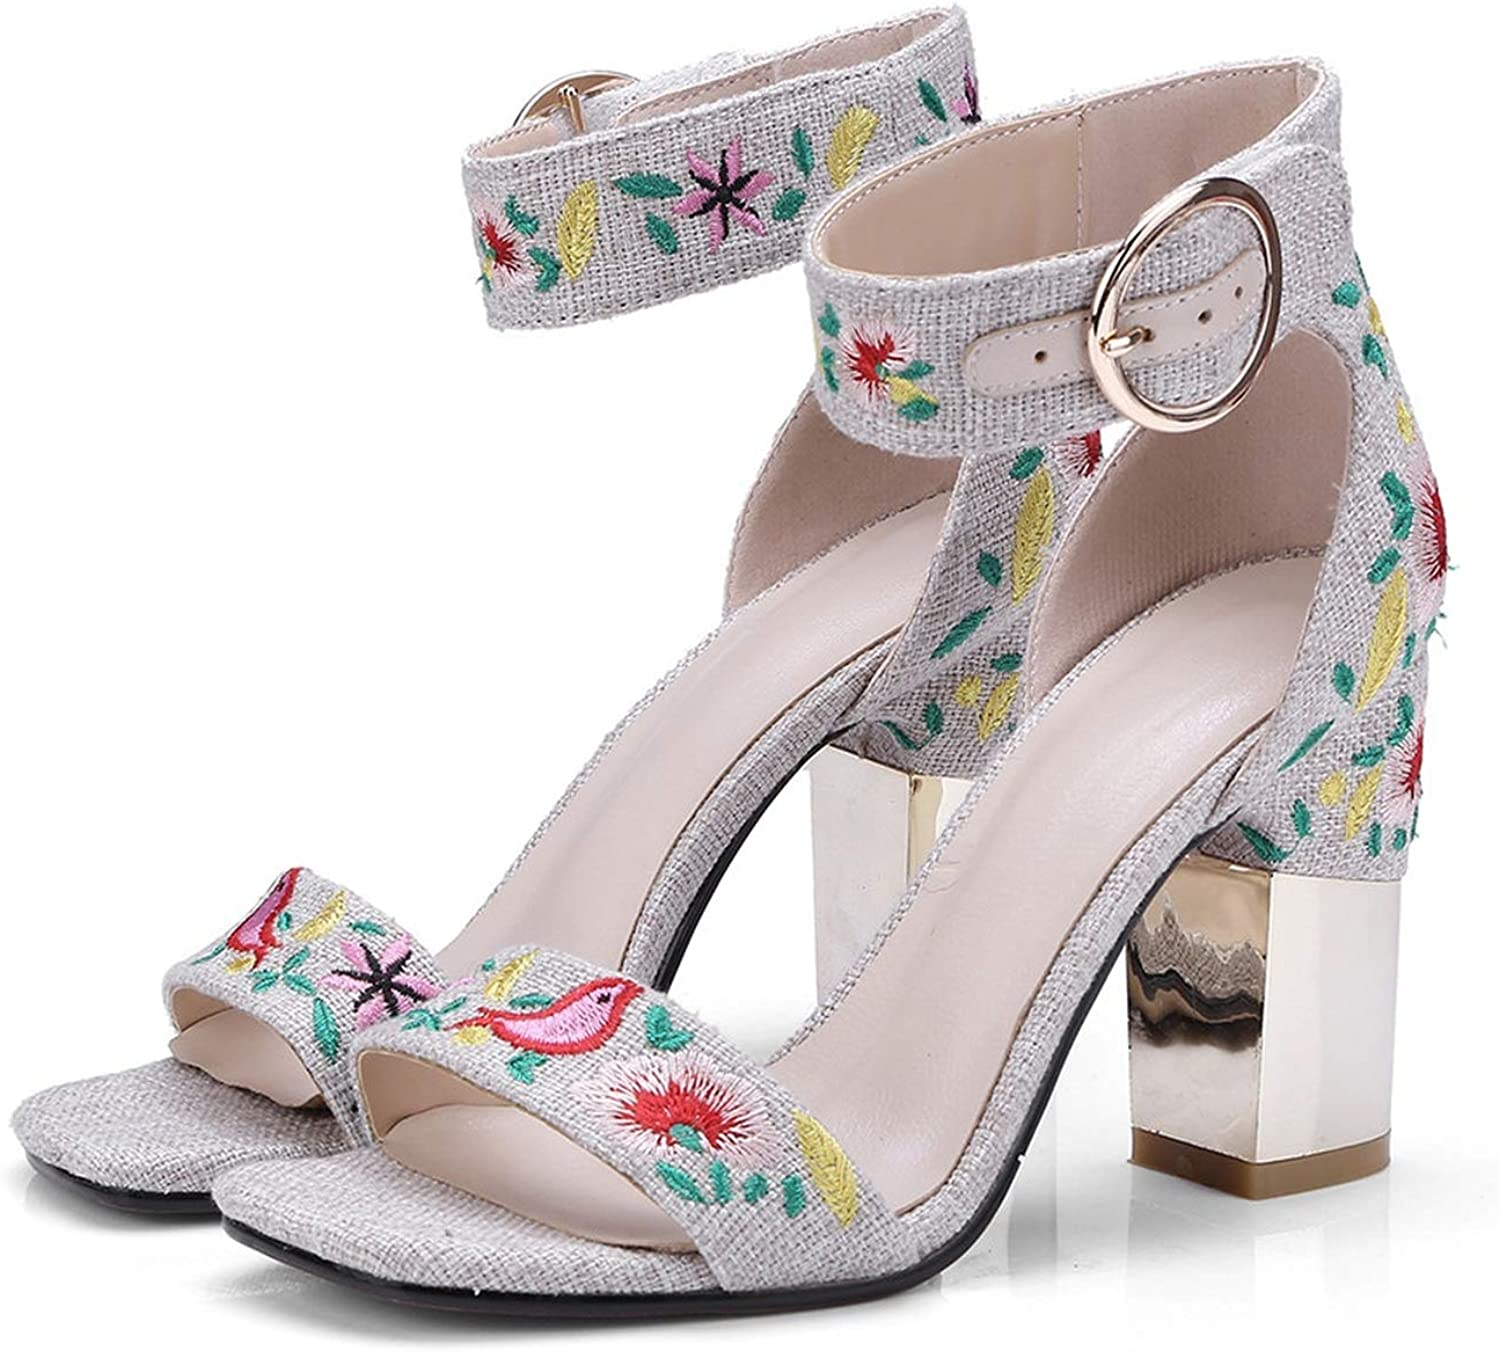 Summer Ladies shoes Square Heel Buckle Embroider Wedding shoes Women high Heels Sandals